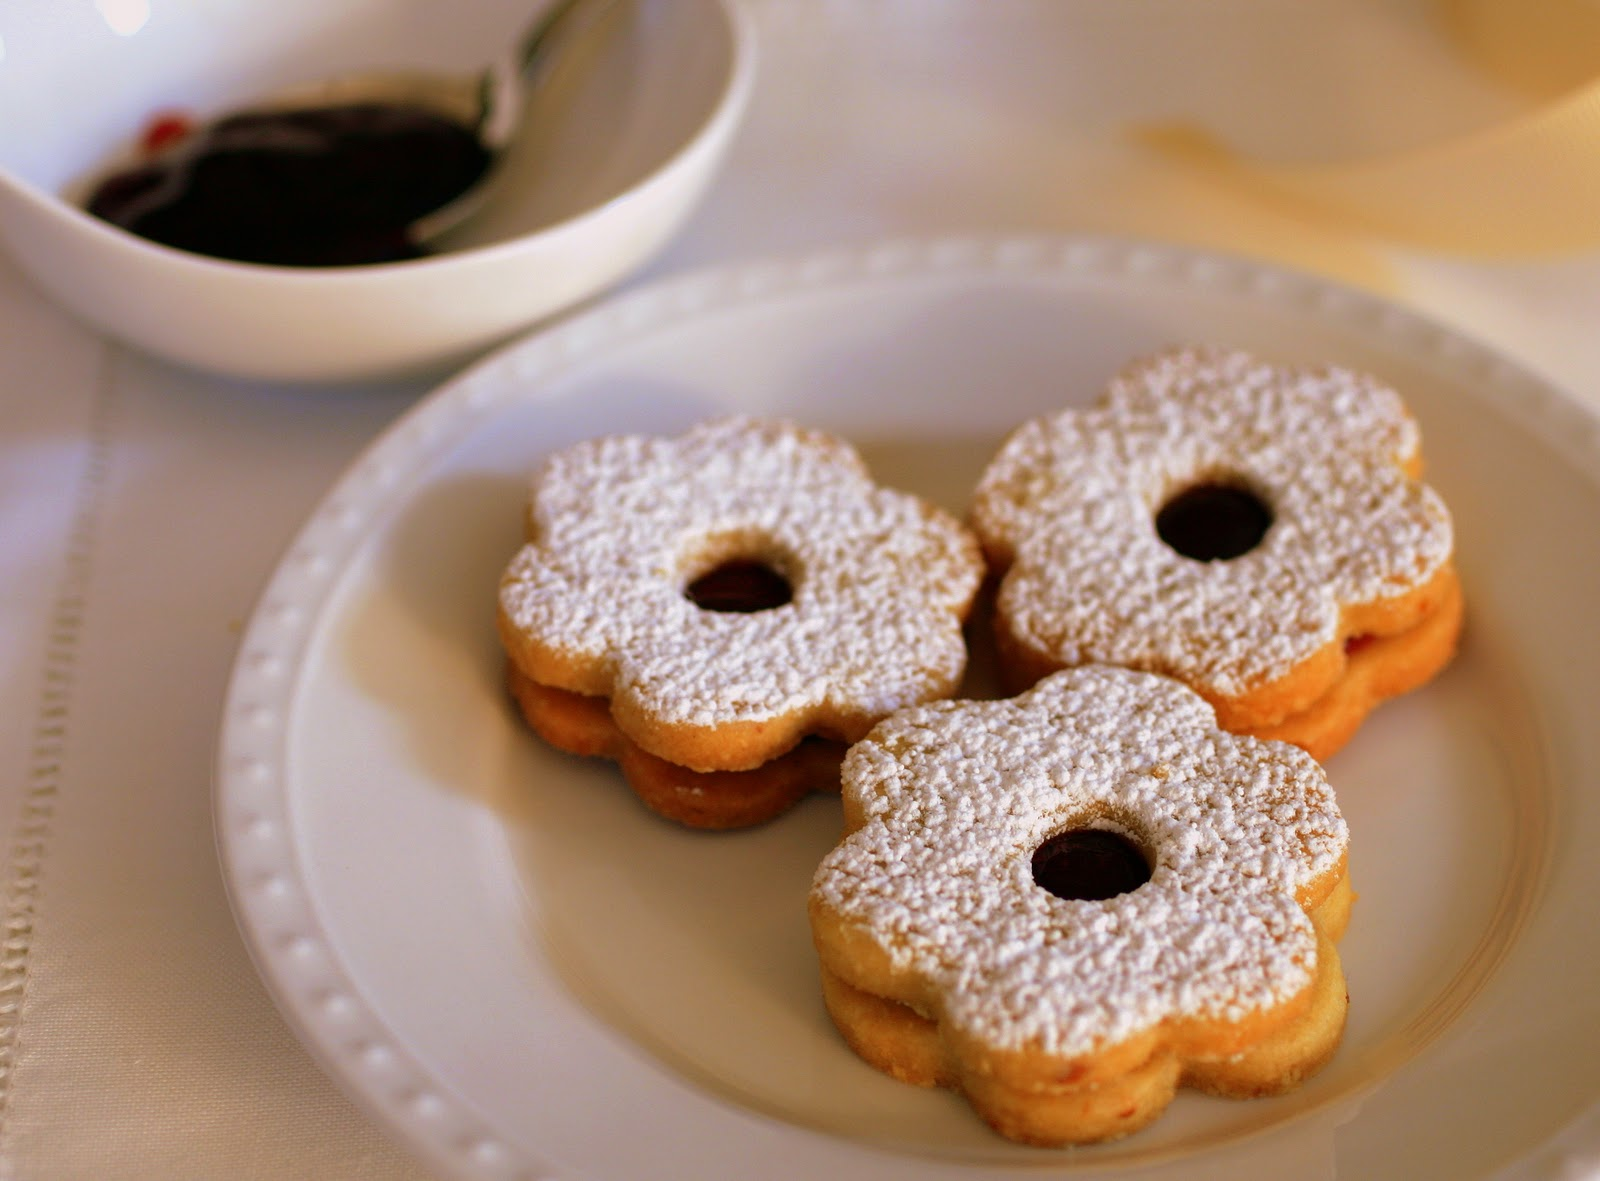 Tish Boyle Sweet Dreams: Holiday Linzer Cookies and Raspberry Macarons